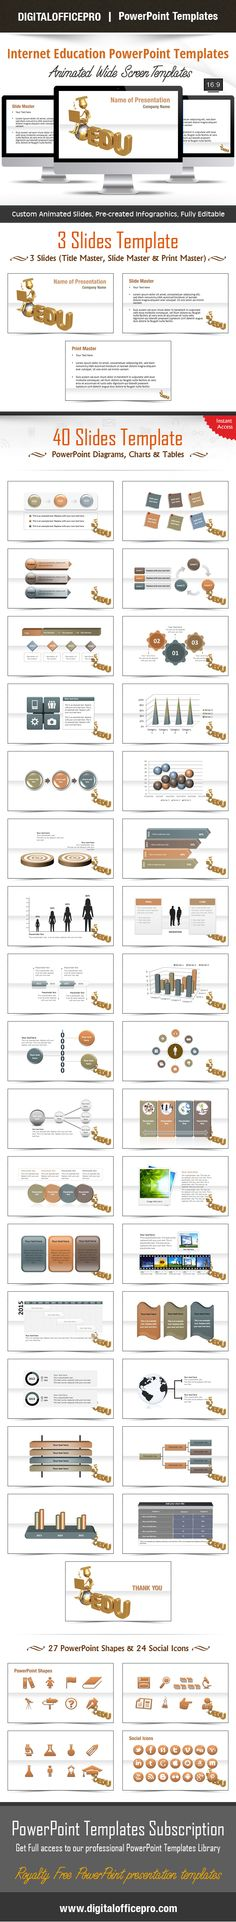 Impress and Engage your audience with Internet Education PowerPoint Template and Internet Education PowerPoint Backgrounds from DigitalOfficePro. Each template comes with a set of PowerPoint Diagrams, Charts & Shapes and are available for instant download.